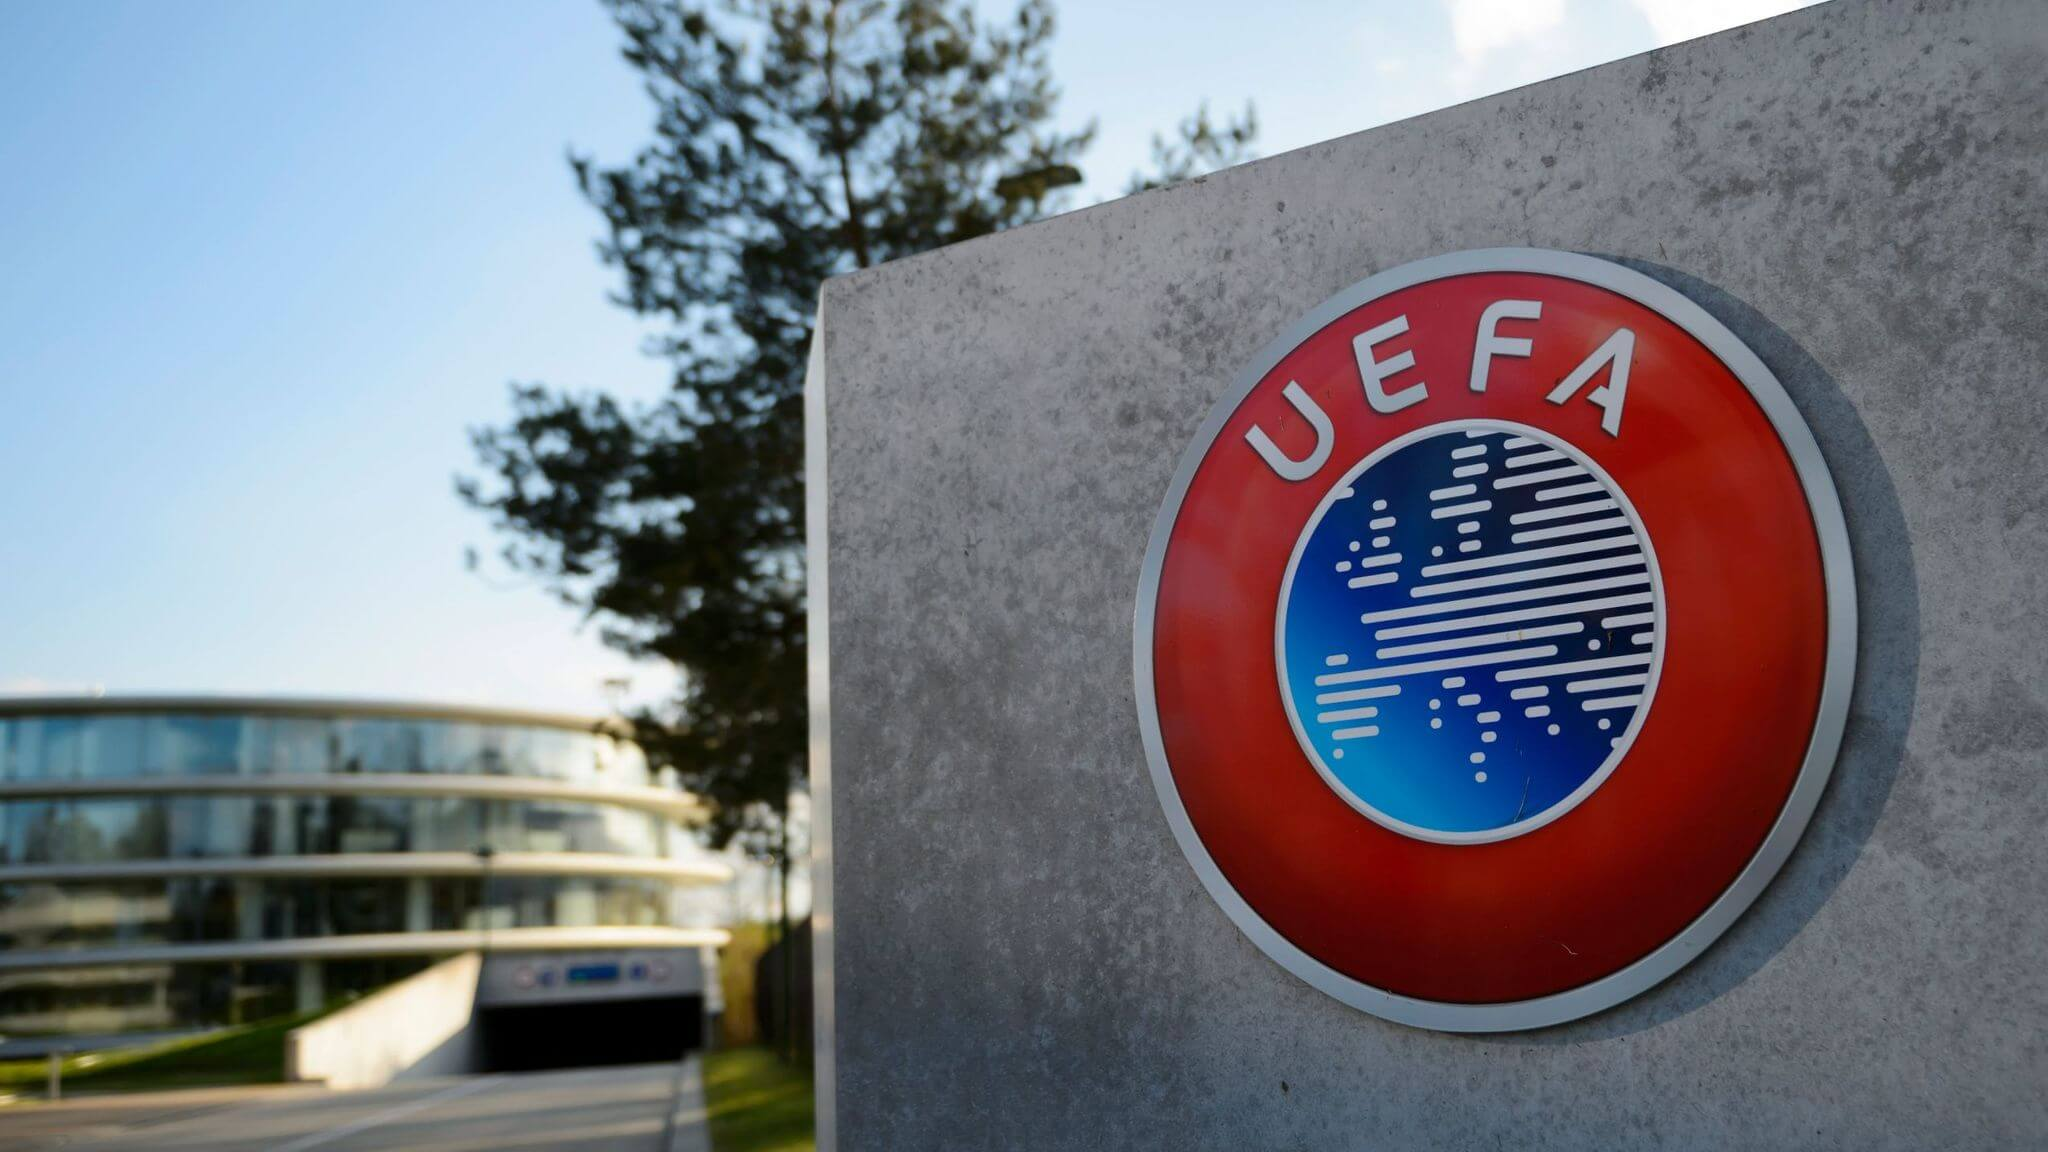 UEFA Financial Fair Play faces likely changes after Manchester City ban overturned